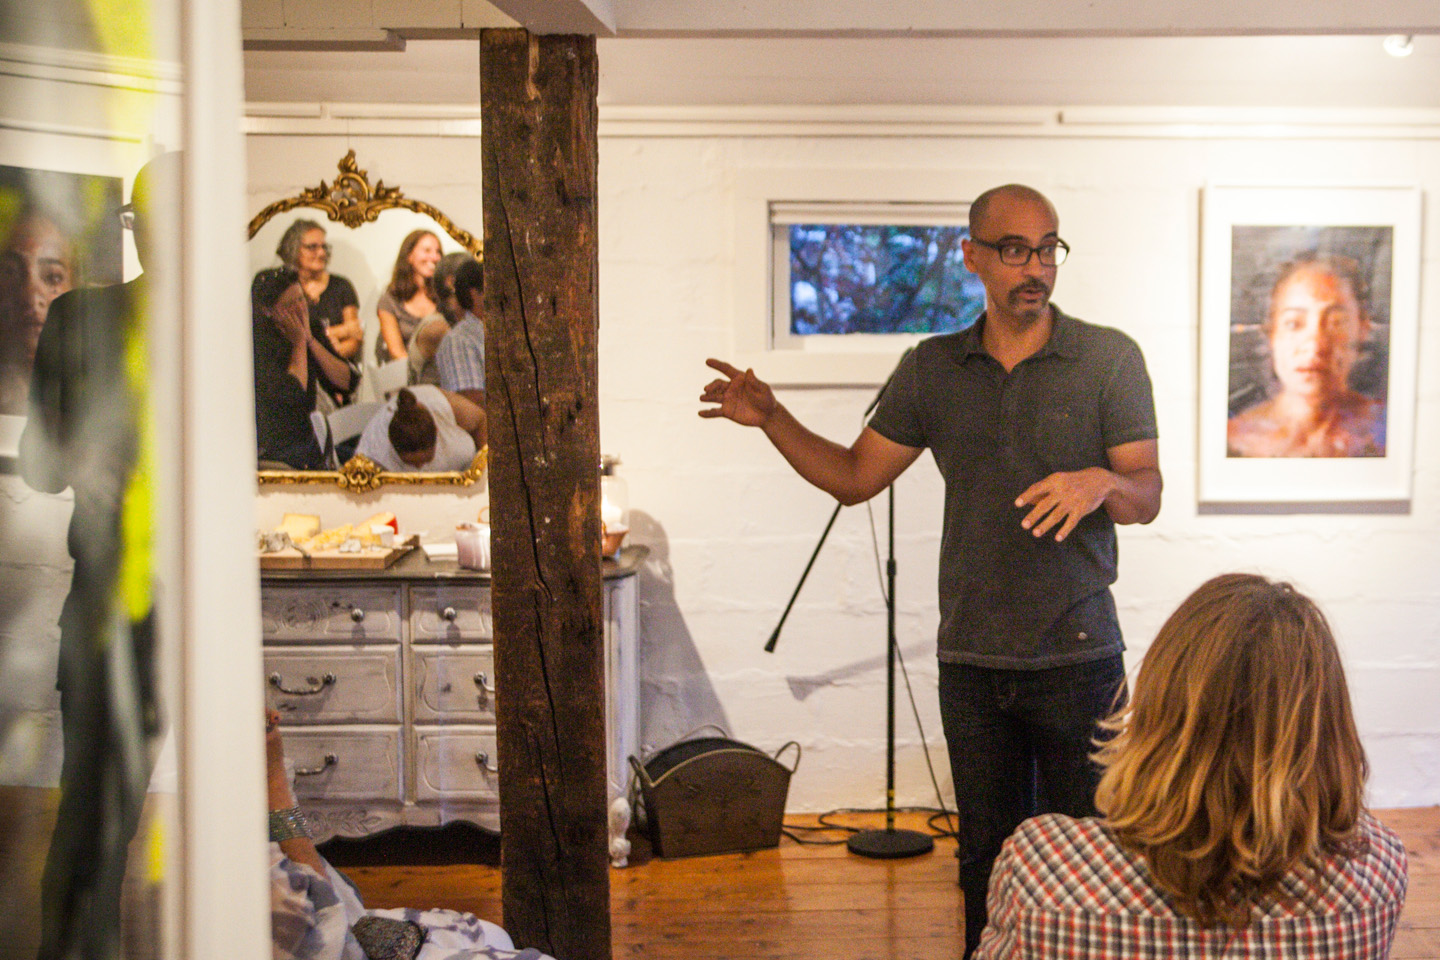 Junot Díaz and John Forté make for an intimate evening at Gallery Josephine